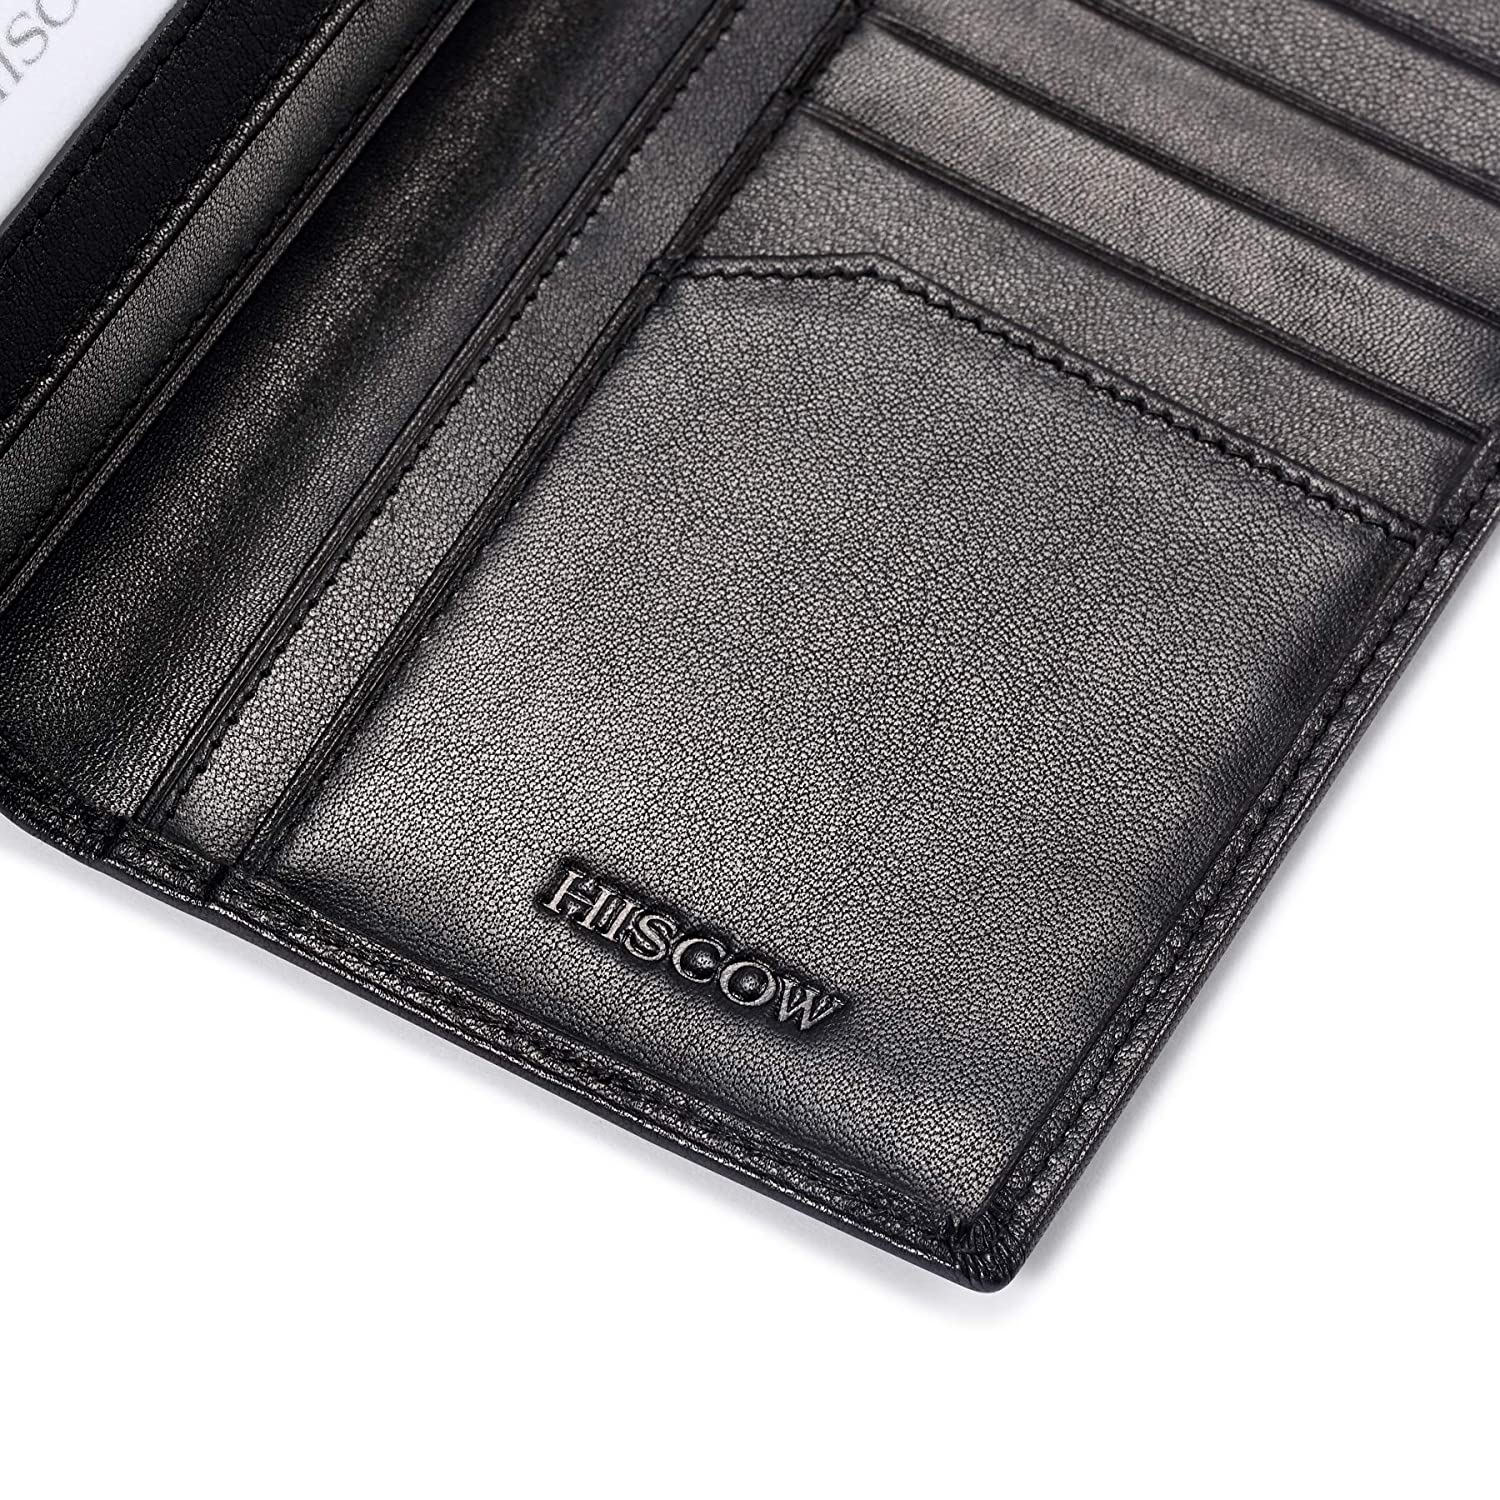 Amazon.com: hiscow Bifold largo billetera negro con grandes ...